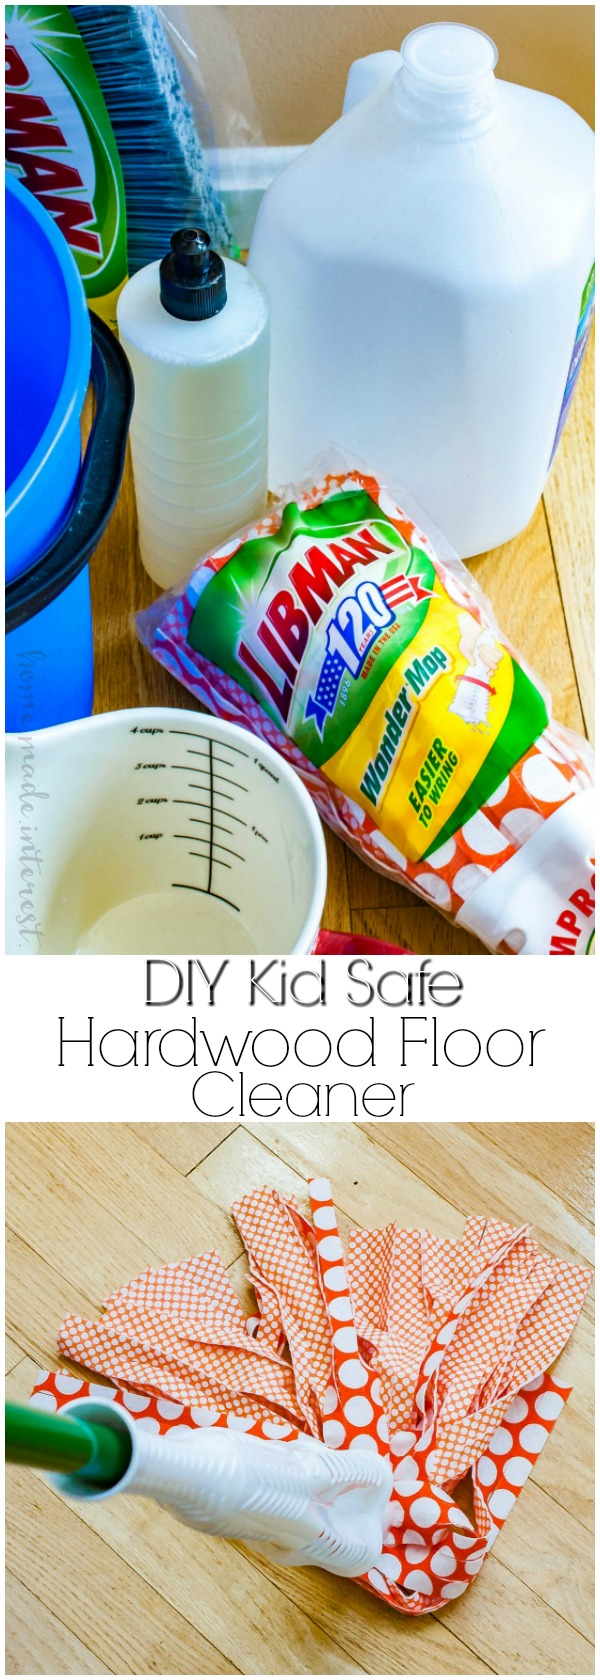 DIY Hardwood Floor Cleaner | This Homemade Floor Cleaner Is Perfect For  Spring Cleaning. Make